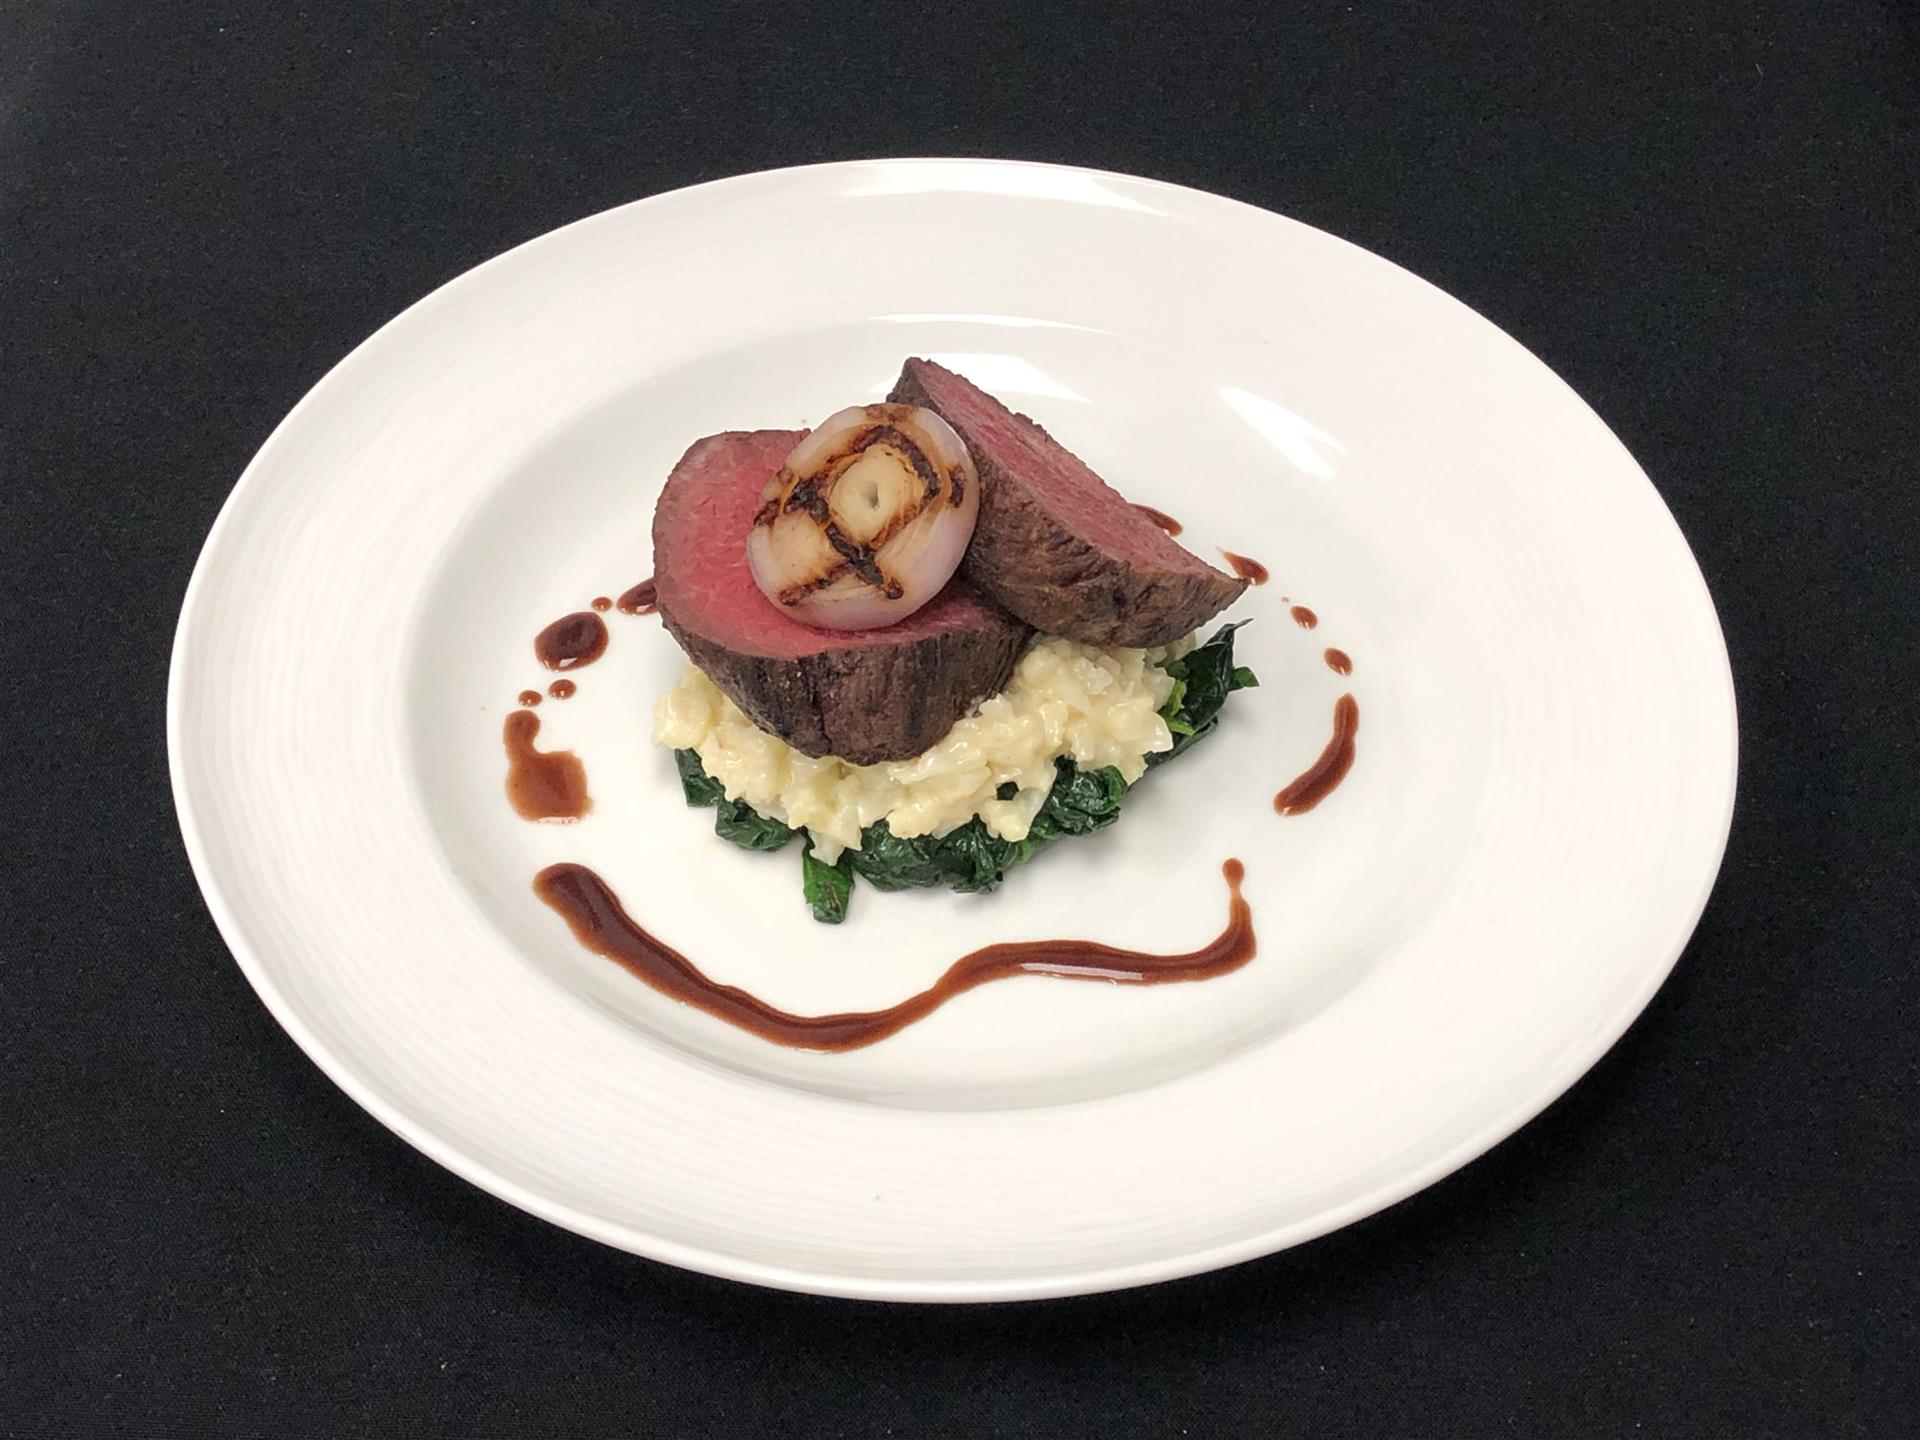 Sliced Chateaubriand